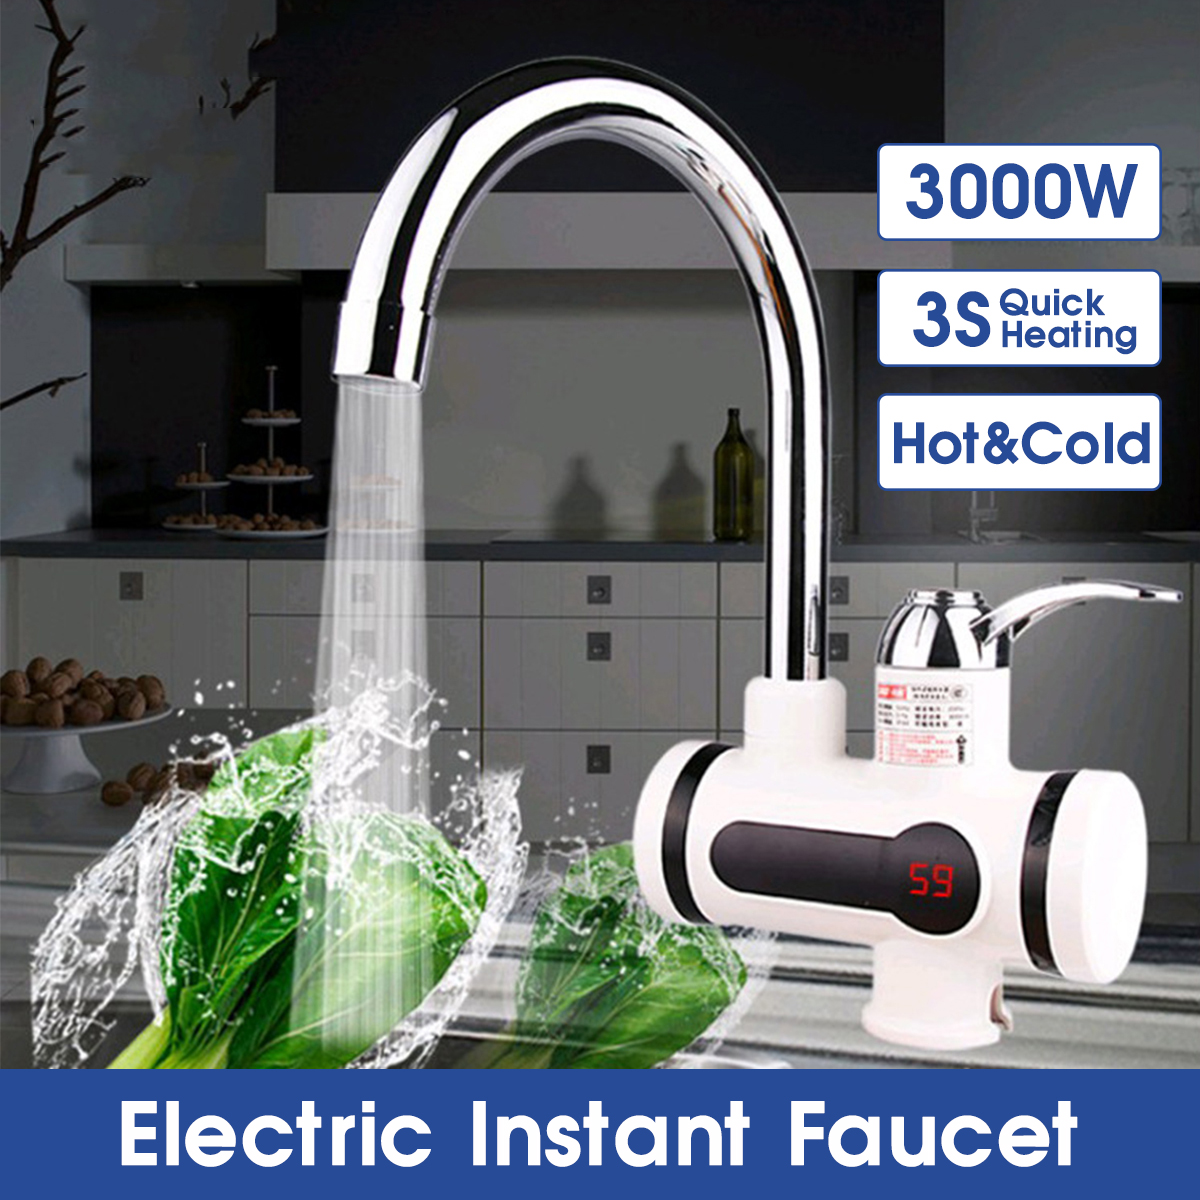 3000W 2 IN 1 LED Display Instant Electric Water Heater Faucet Tap Hot Cold Faucet Tankless Kitchen Water Heater Fast Heating